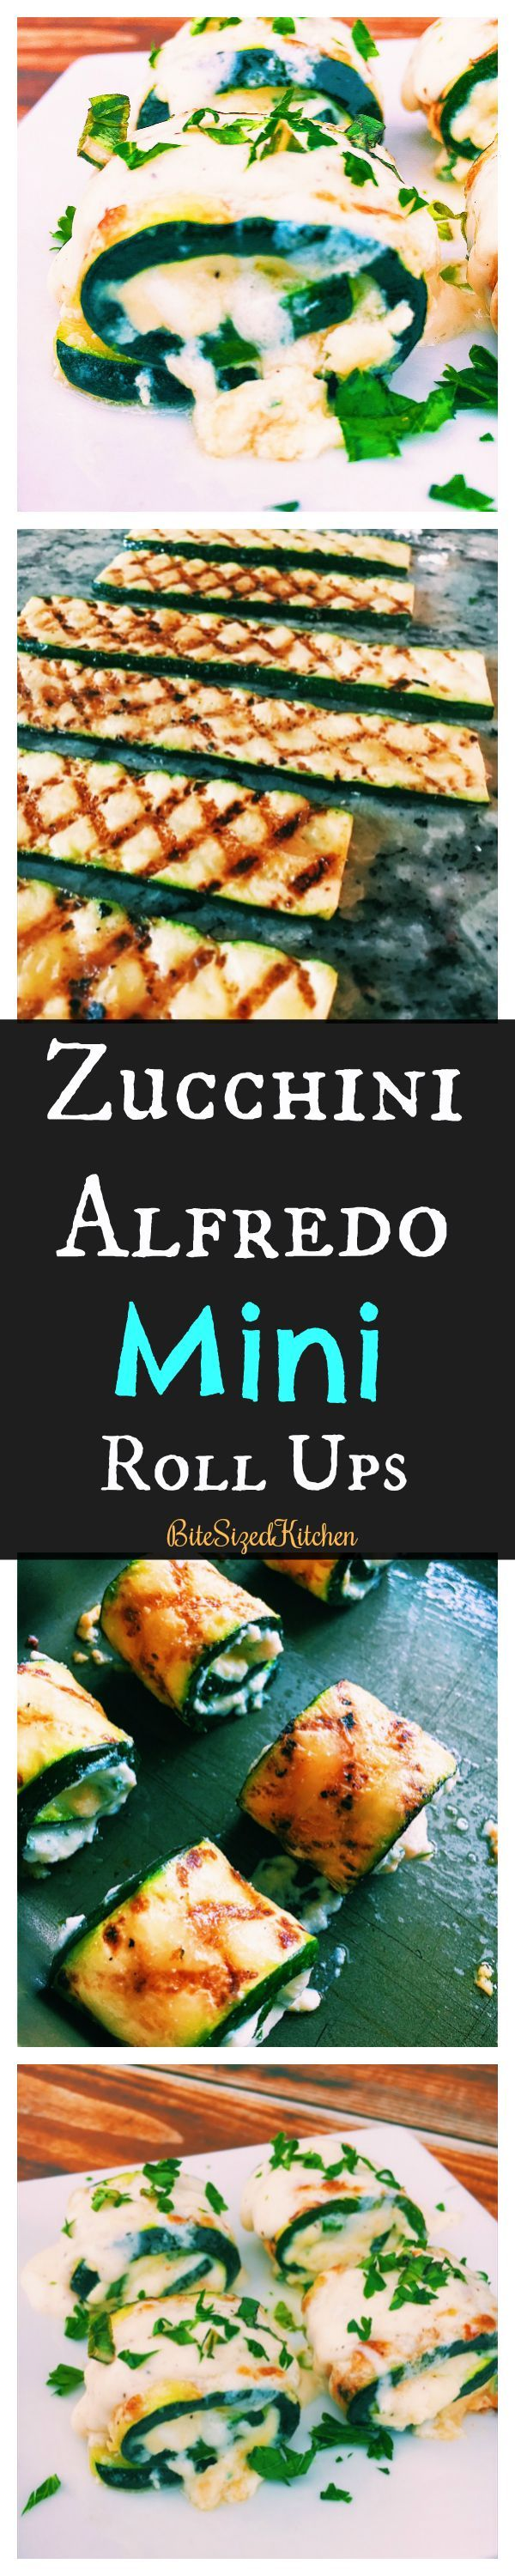 Quick Easy appetizer to make for a party |Zucchini Roll Ups | easy roll ups | zucchini alfredo bites | vegetarian  appetizer